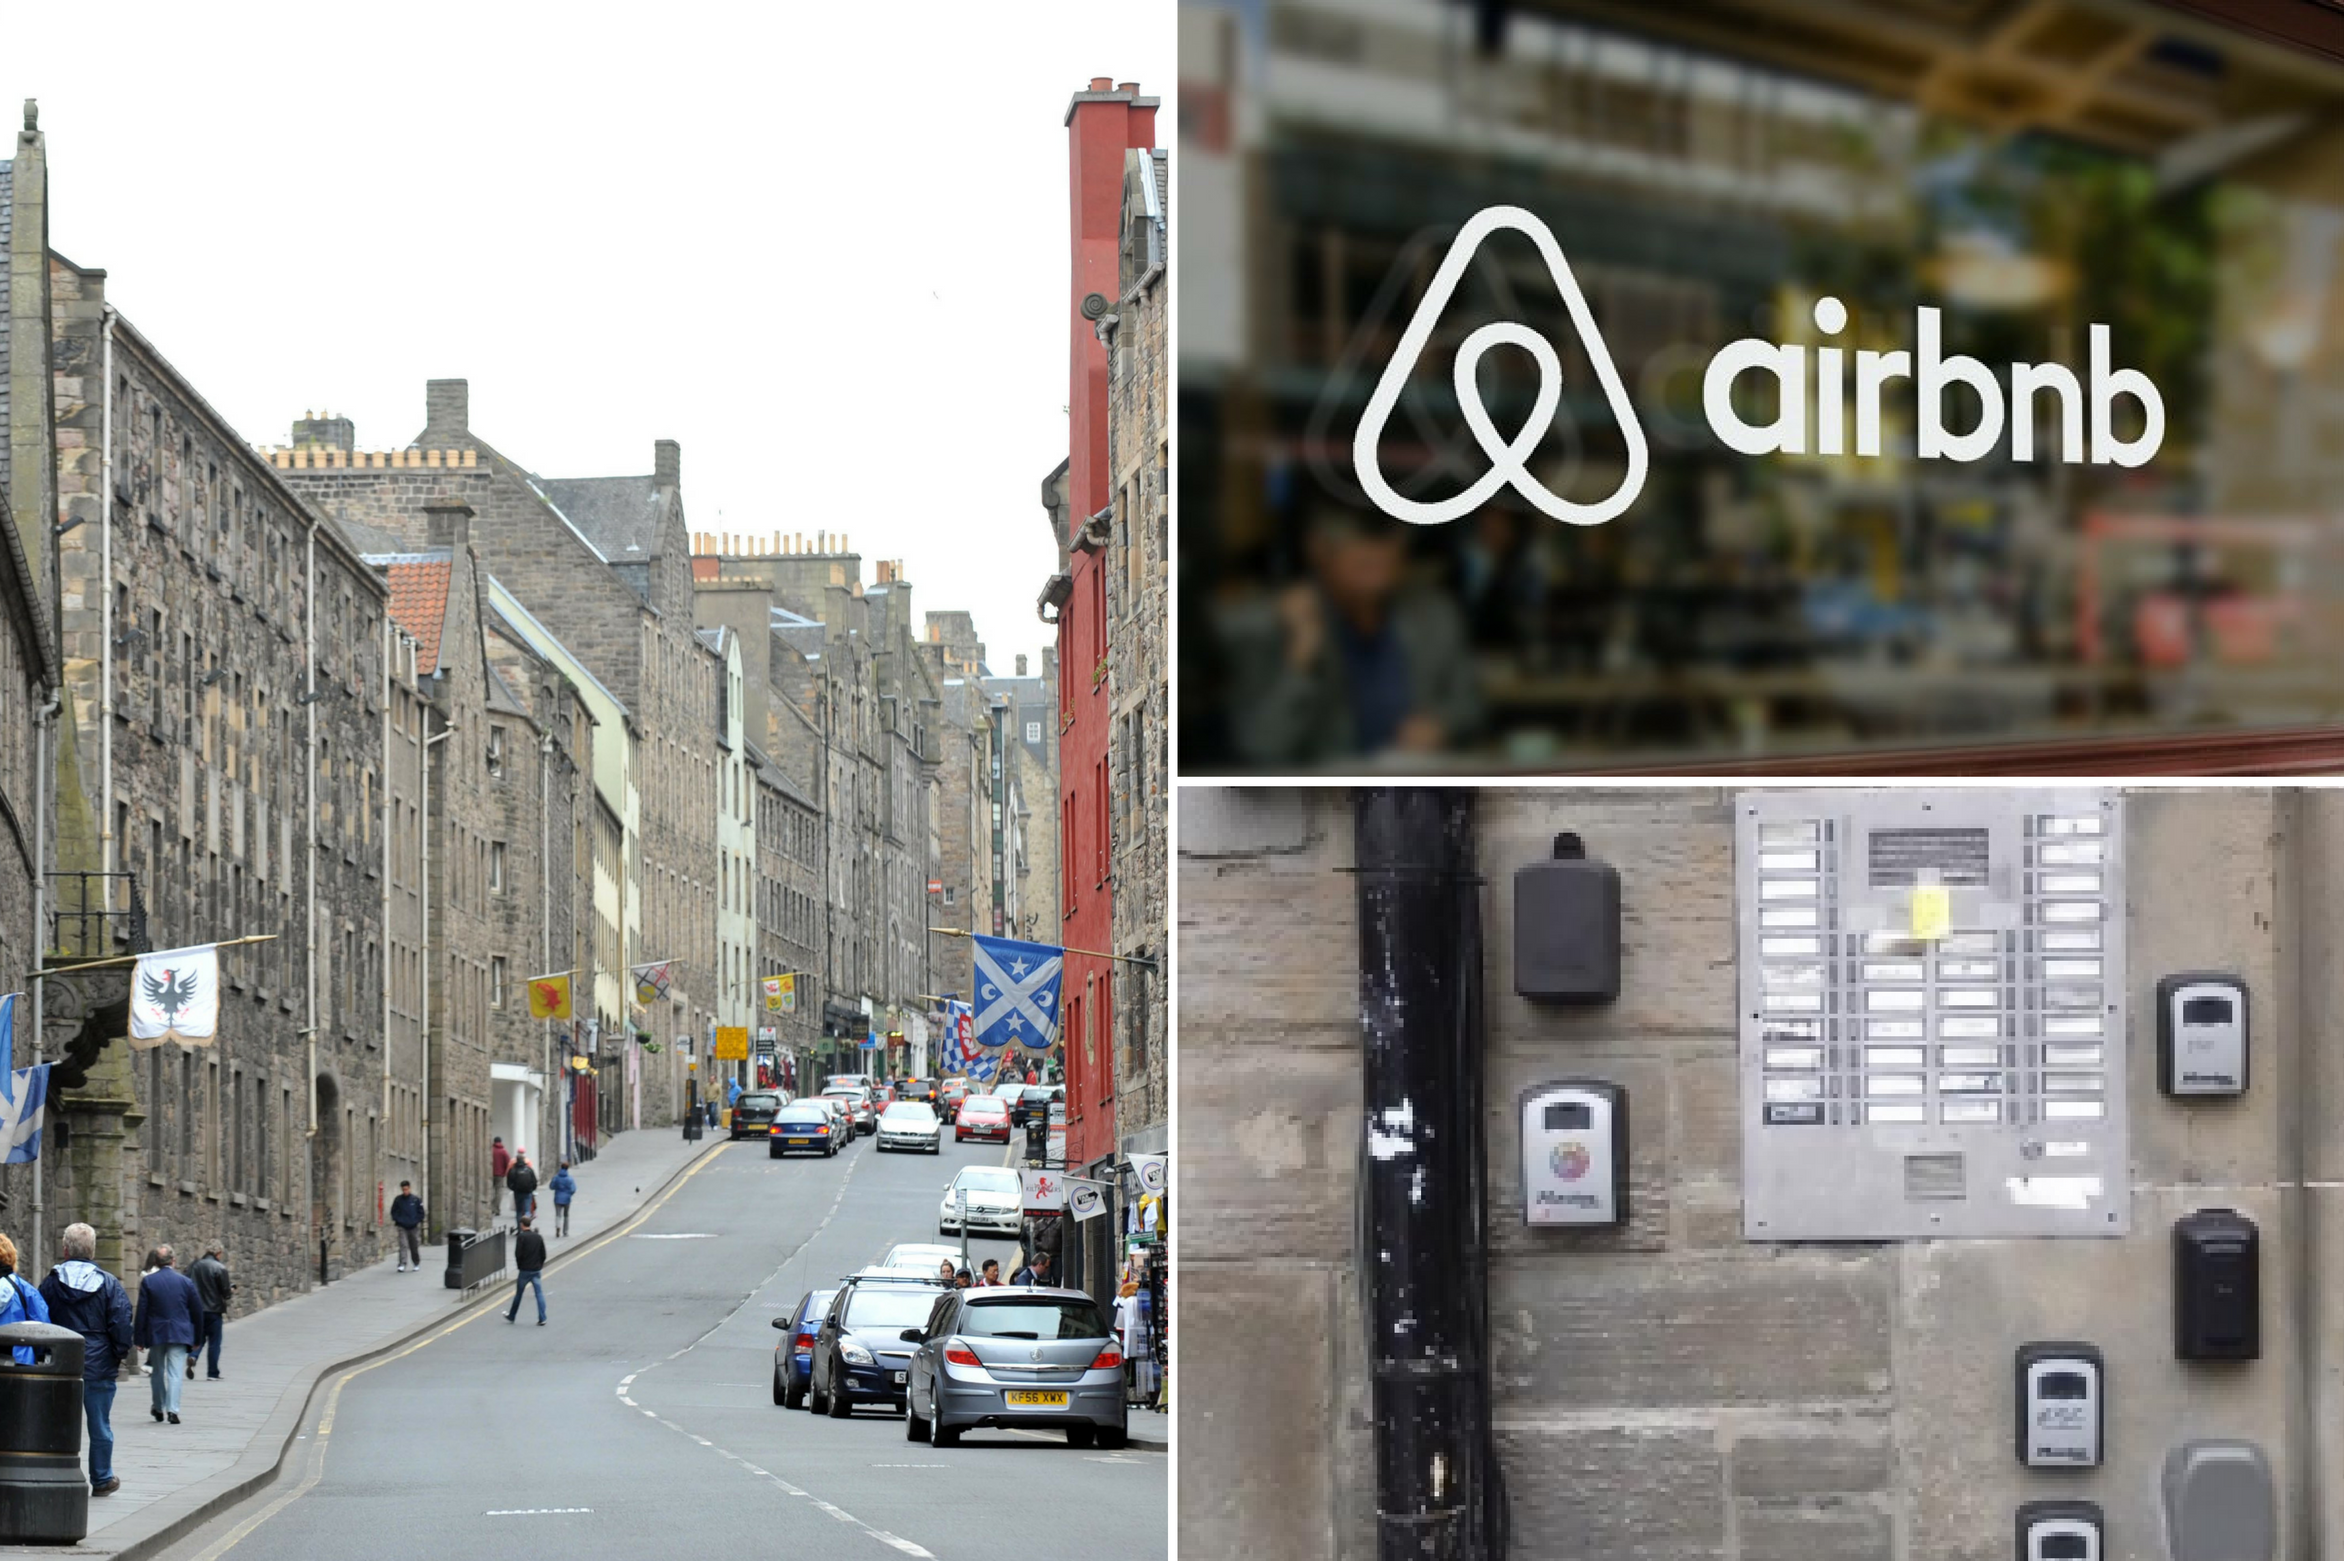 Edinburgh neighbours will get final say over Airbnb holiday flats next door under new plan